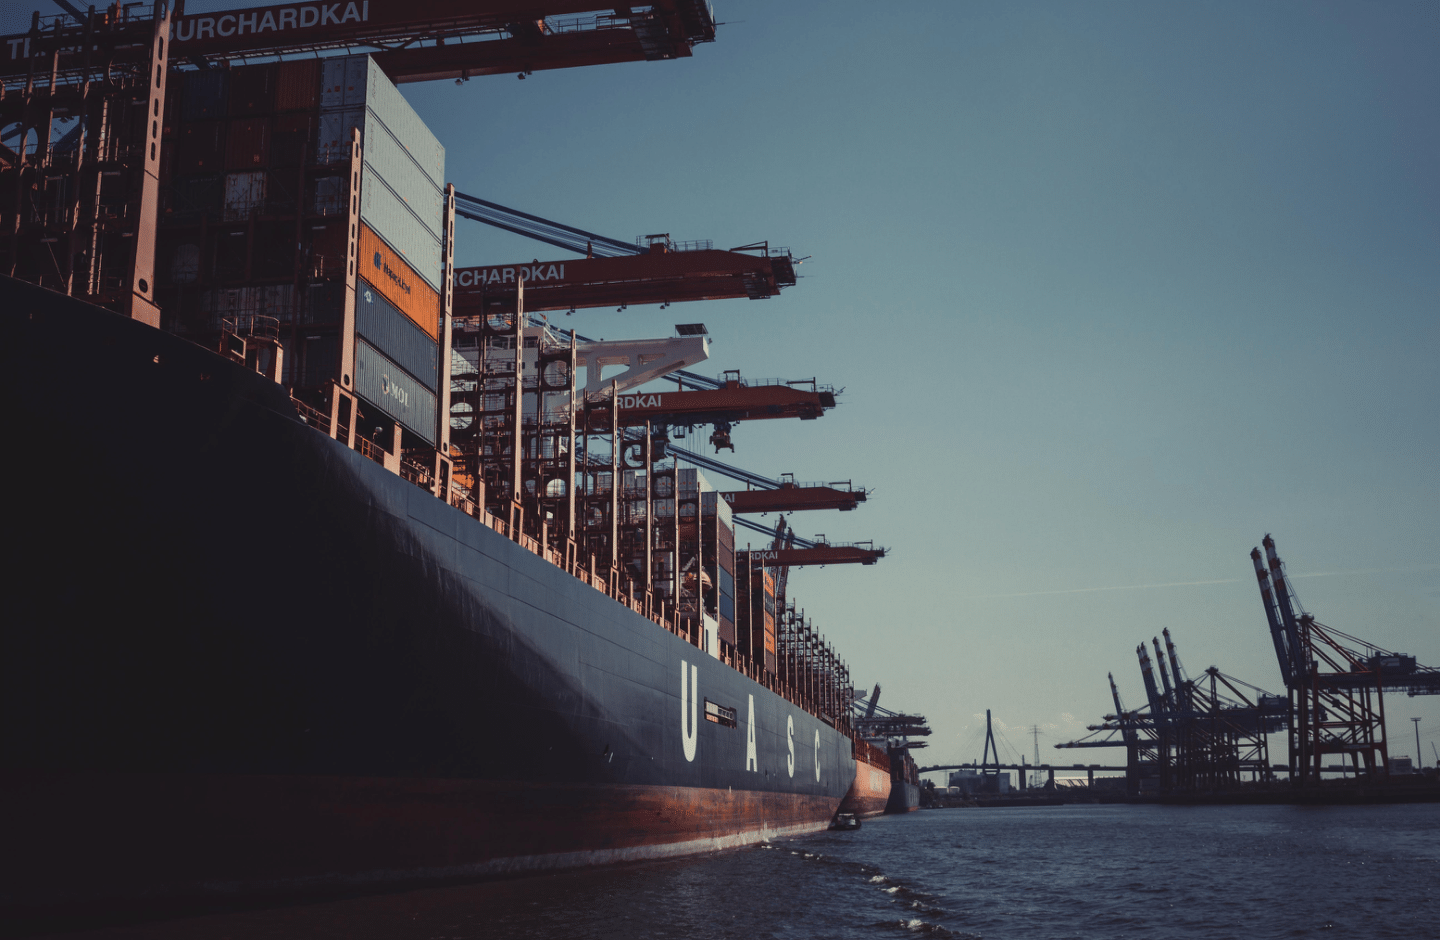 A freighter ship with shipping containers